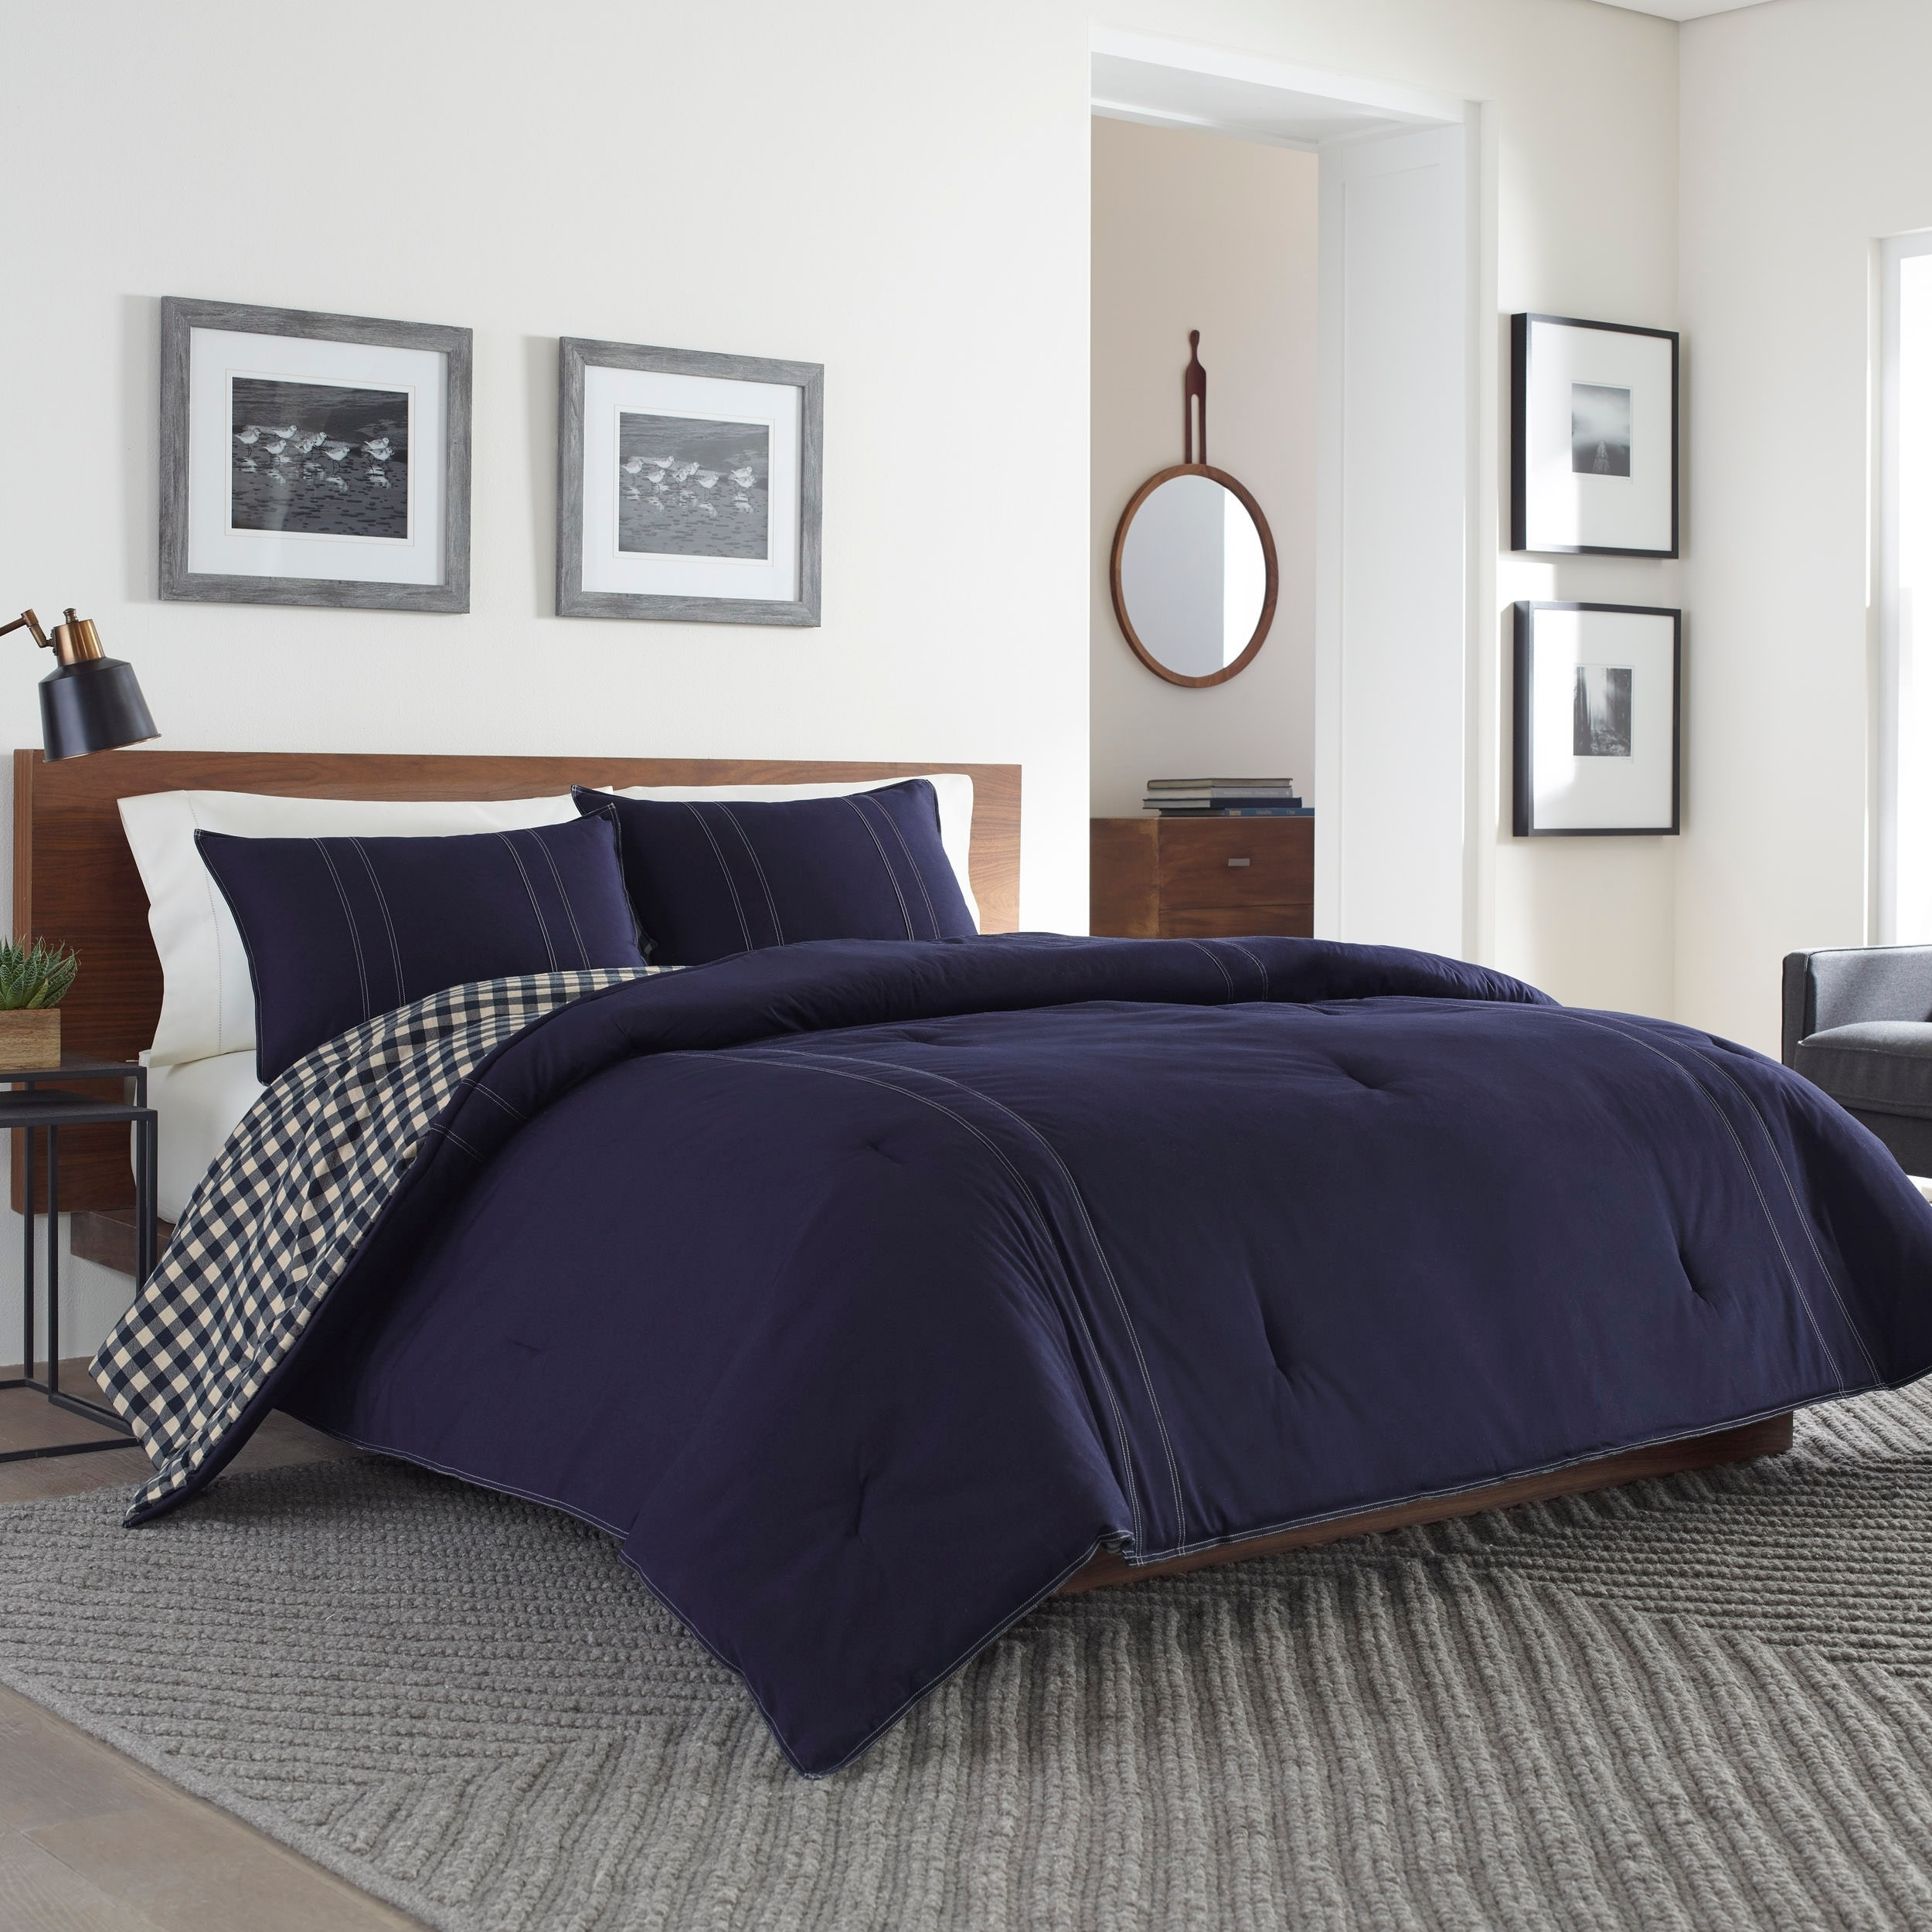 Shop eddie bauer kingston navy duvet cover set on sale free shipping today overstock com 24037250